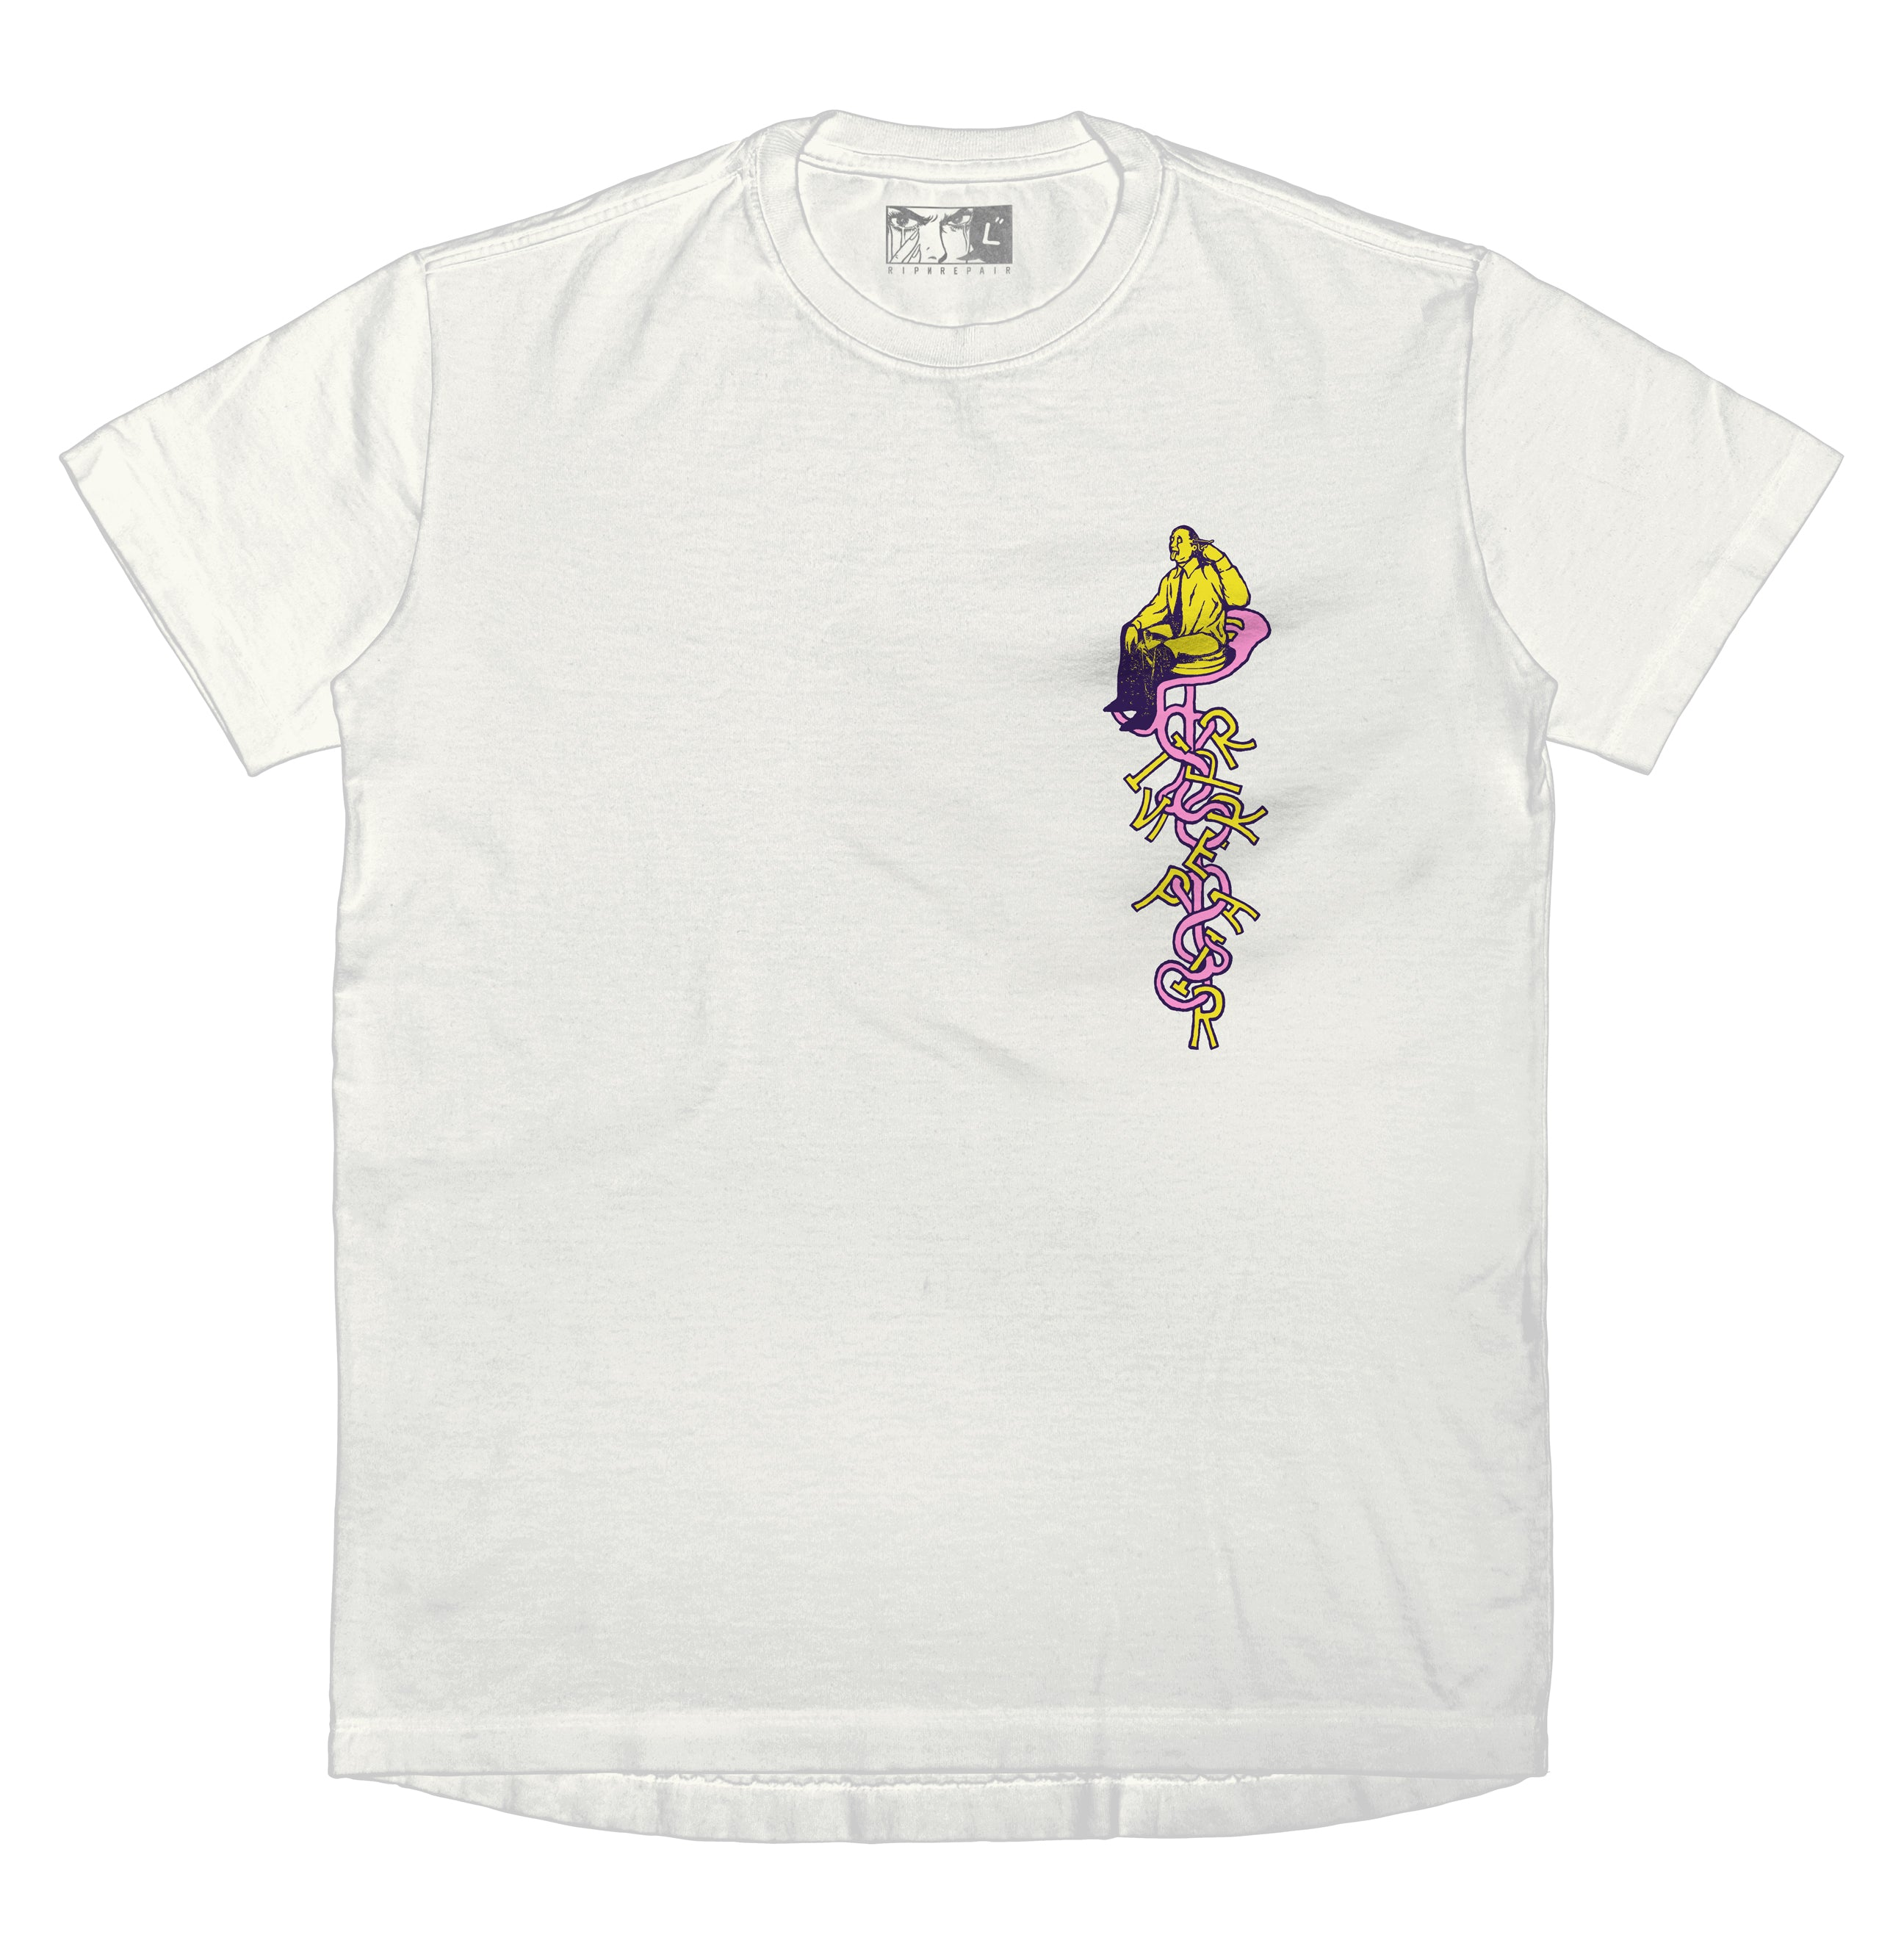 Processing - T-Shirt (White) - RIPNRPR